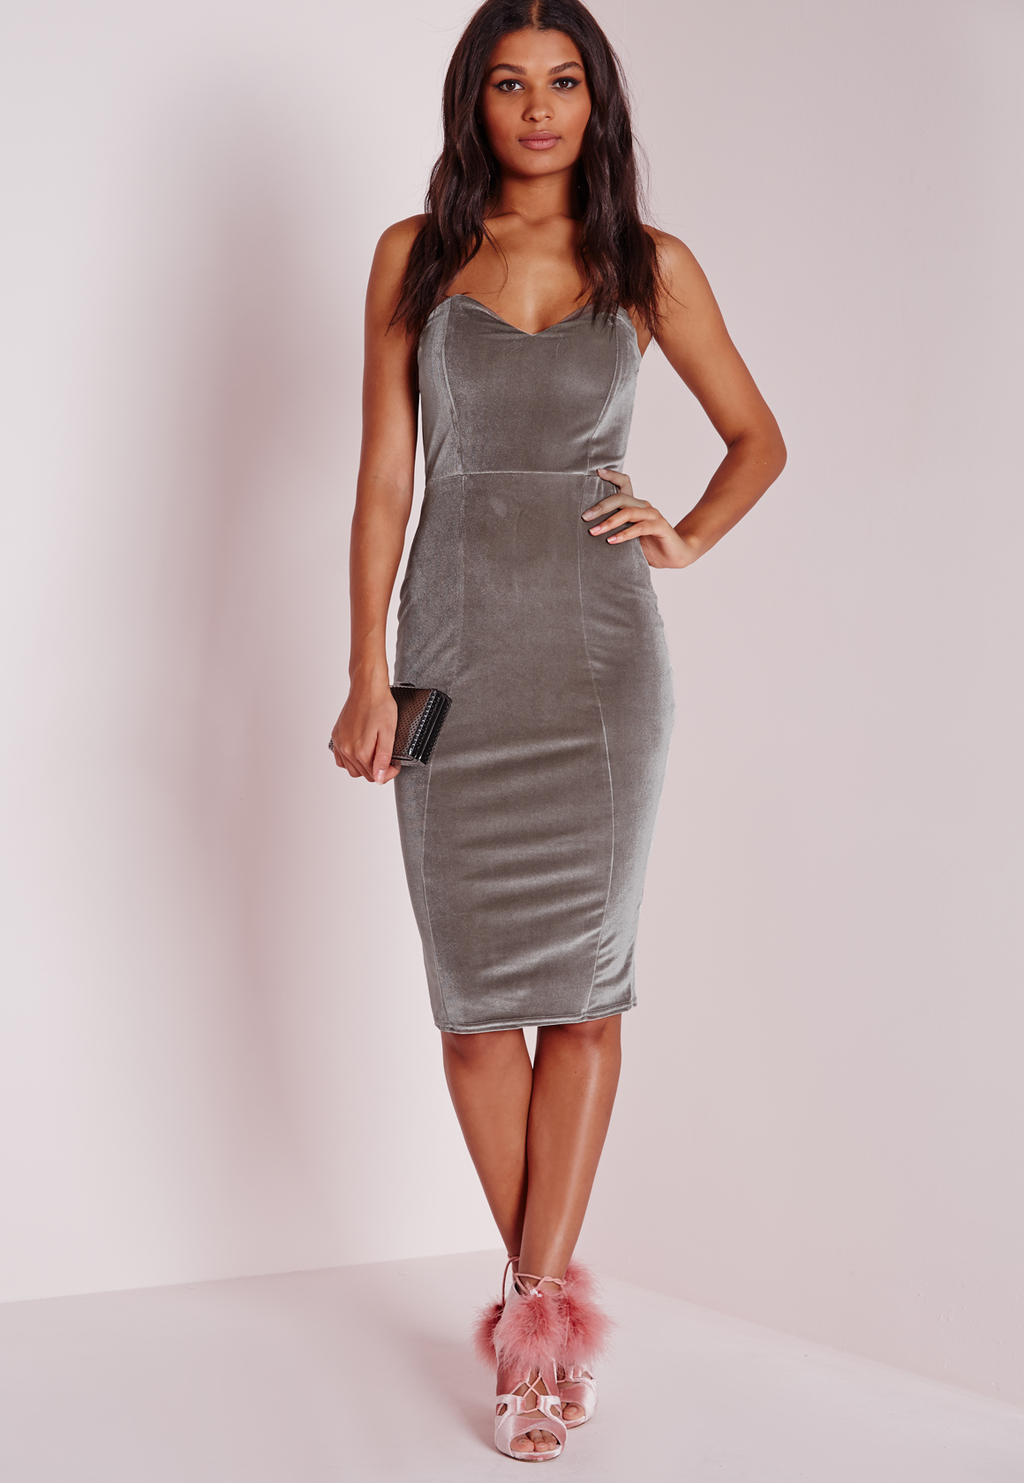 Velvet Bandeau Bodycon Dress Grey, Grey - neckline: v-neck; sleeve style: spaghetti straps; fit: tight; pattern: plain; style: bodycon; predominant colour: light grey; occasions: evening; length: on the knee; fibres: polyester/polyamide - stretch; sleeve length: sleeveless; pattern type: fabric; texture group: velvet/fabrics with pile; season: a/w 2015; wardrobe: event